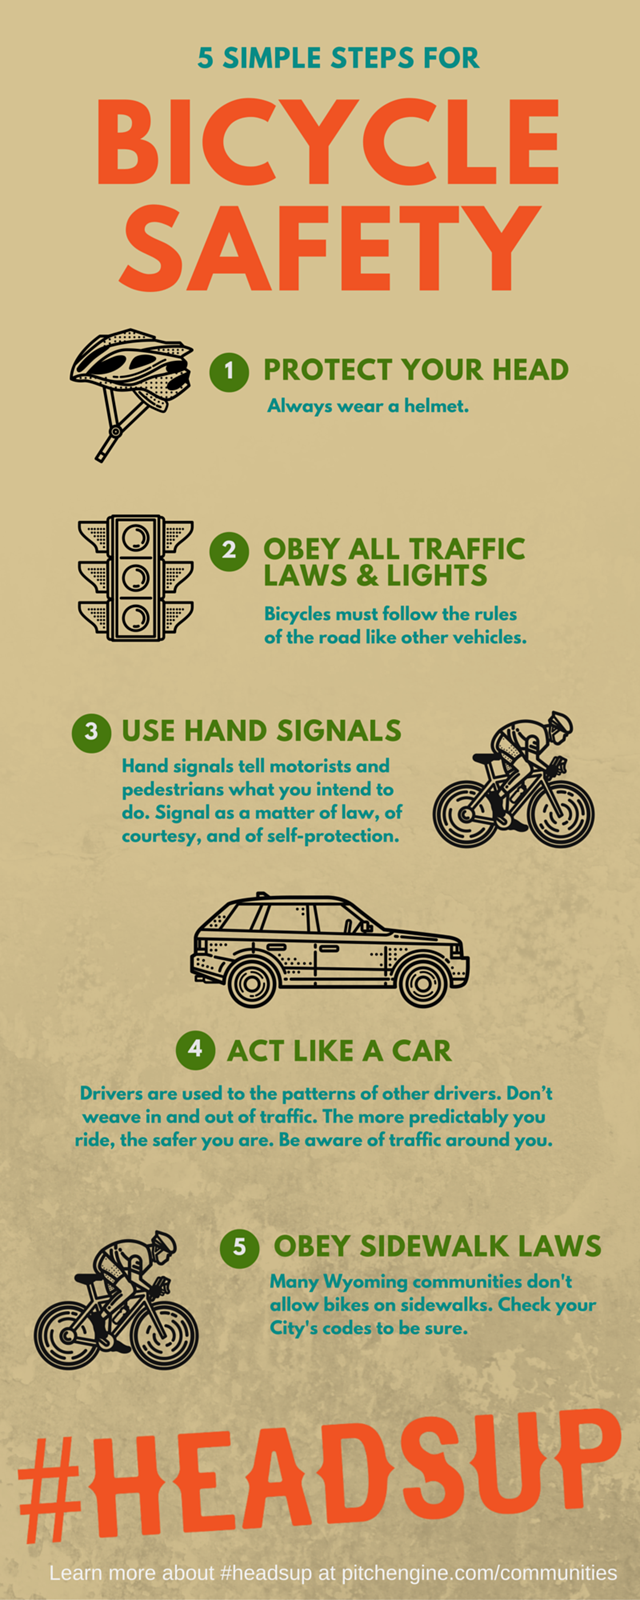 bicycle safety headsup